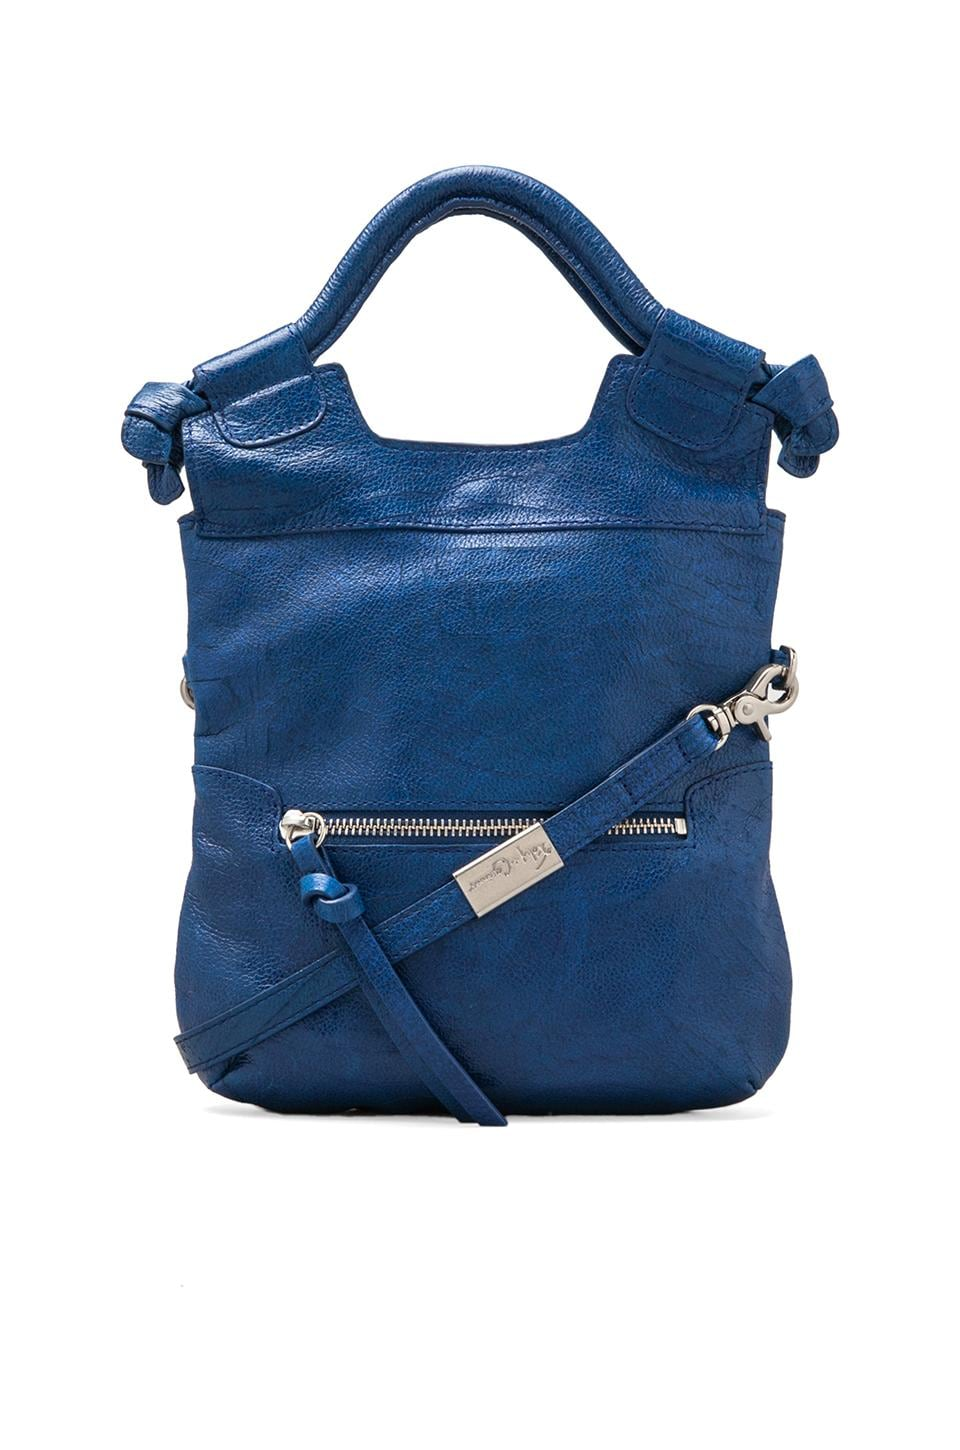 Foley + Corinna Disco City Bag in Azure